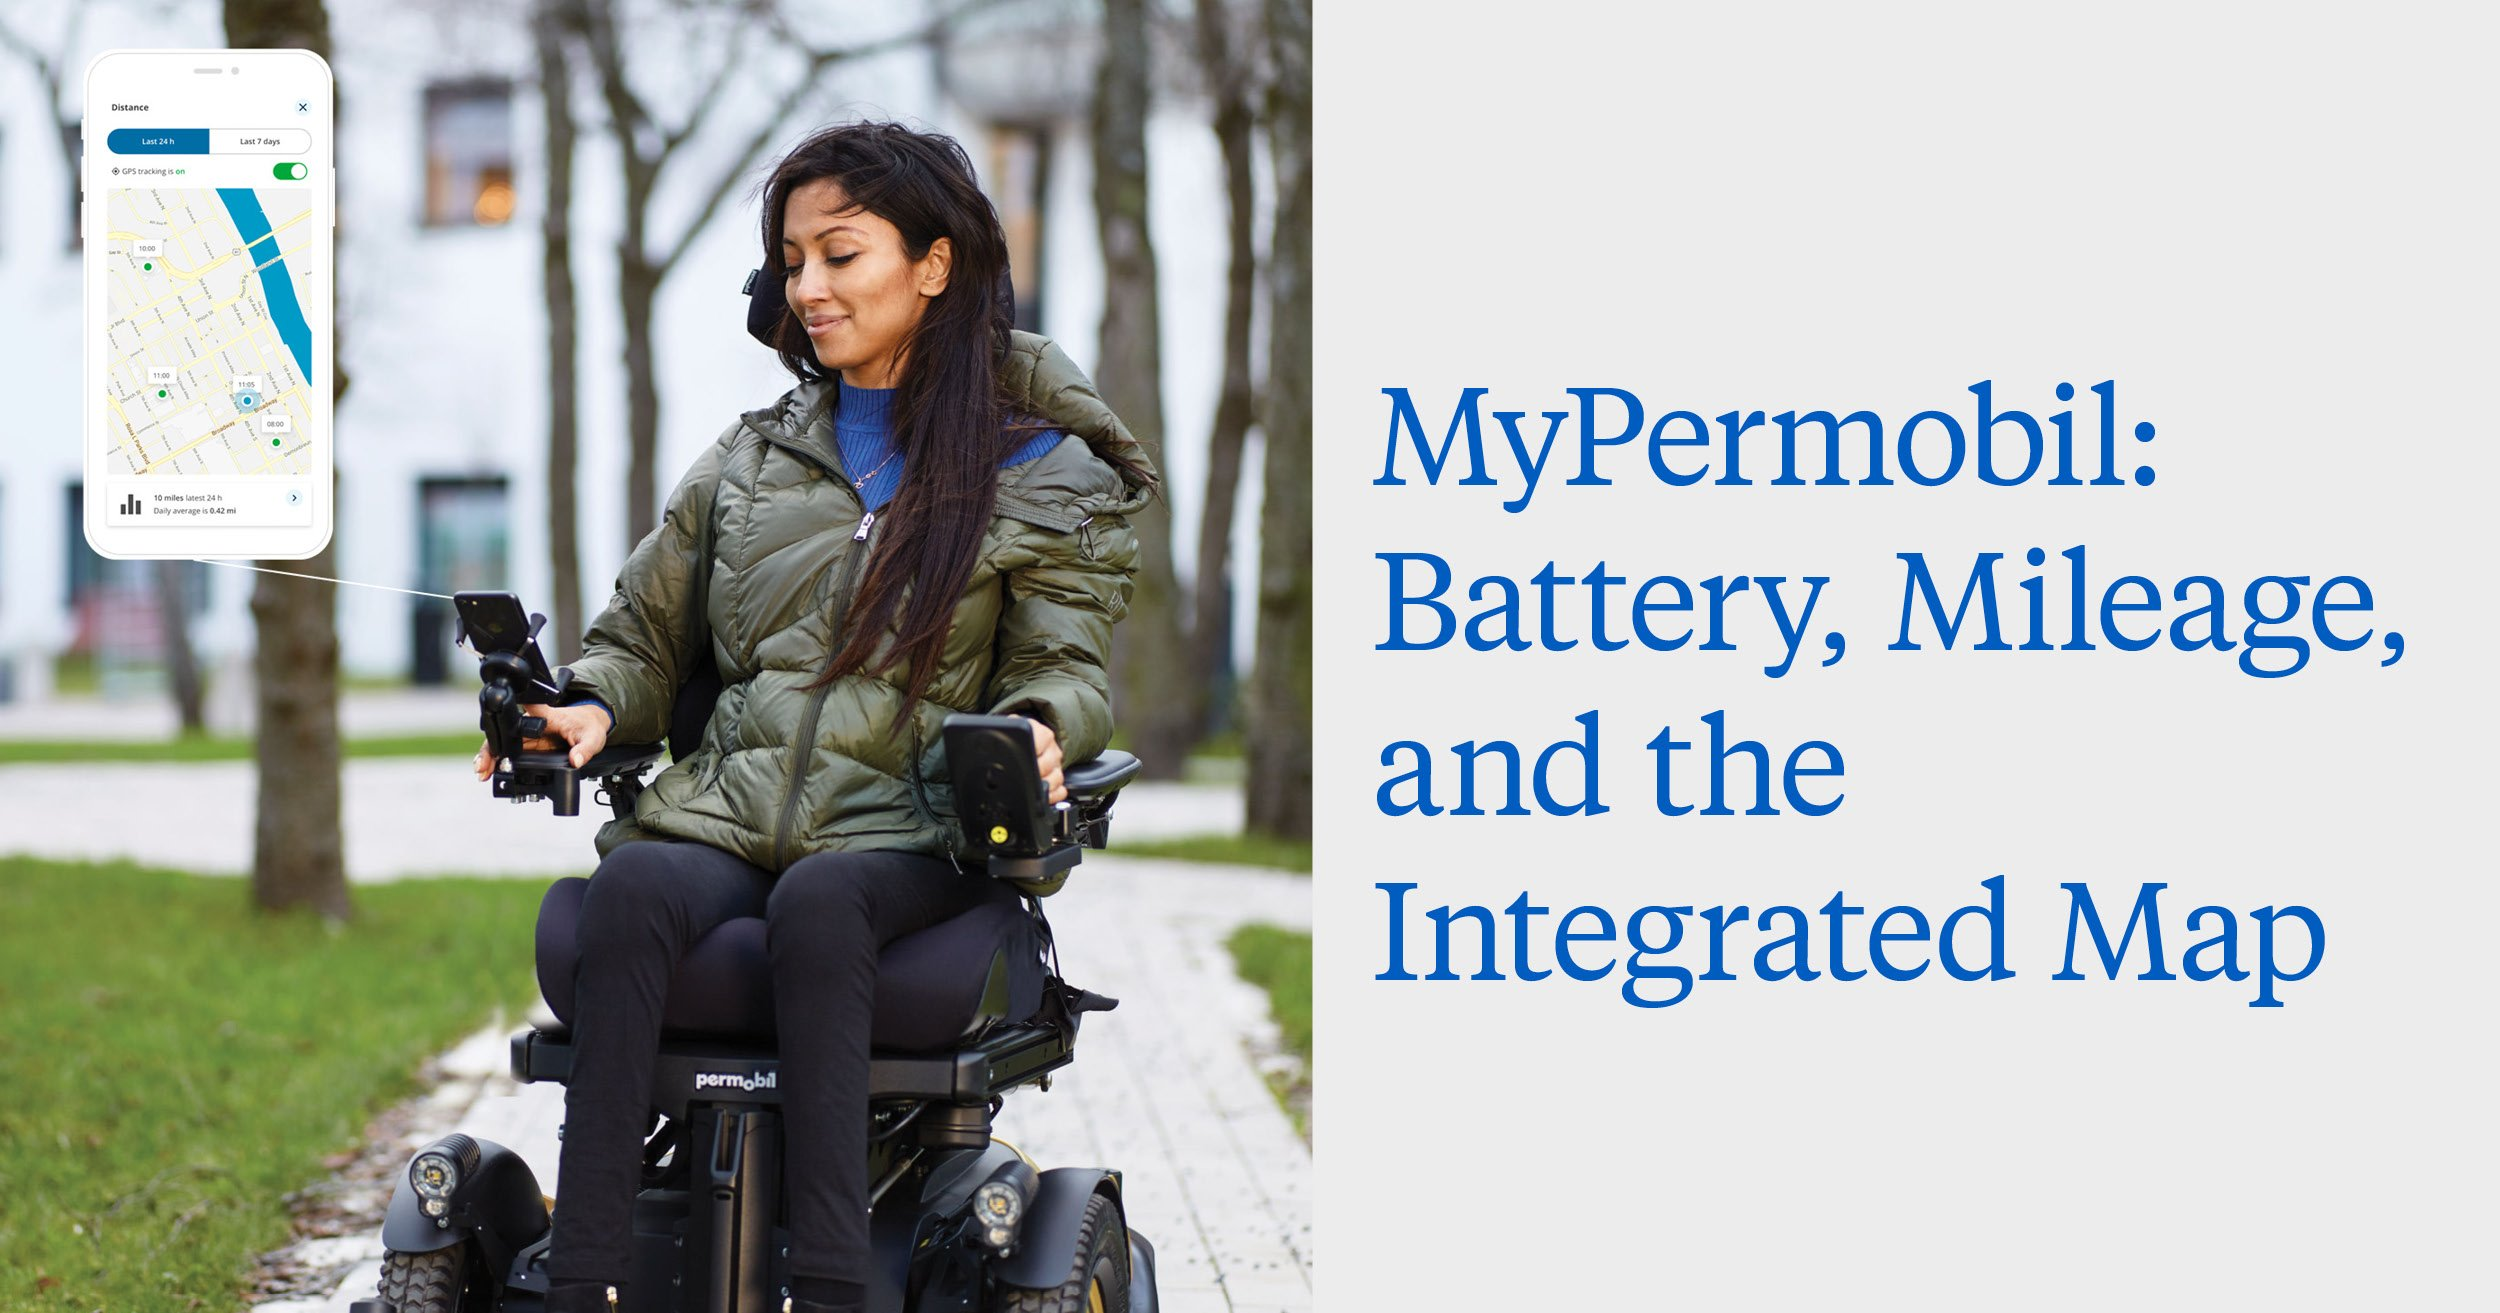 MyPermobil: Battery, Mileage, and the Integrated Map